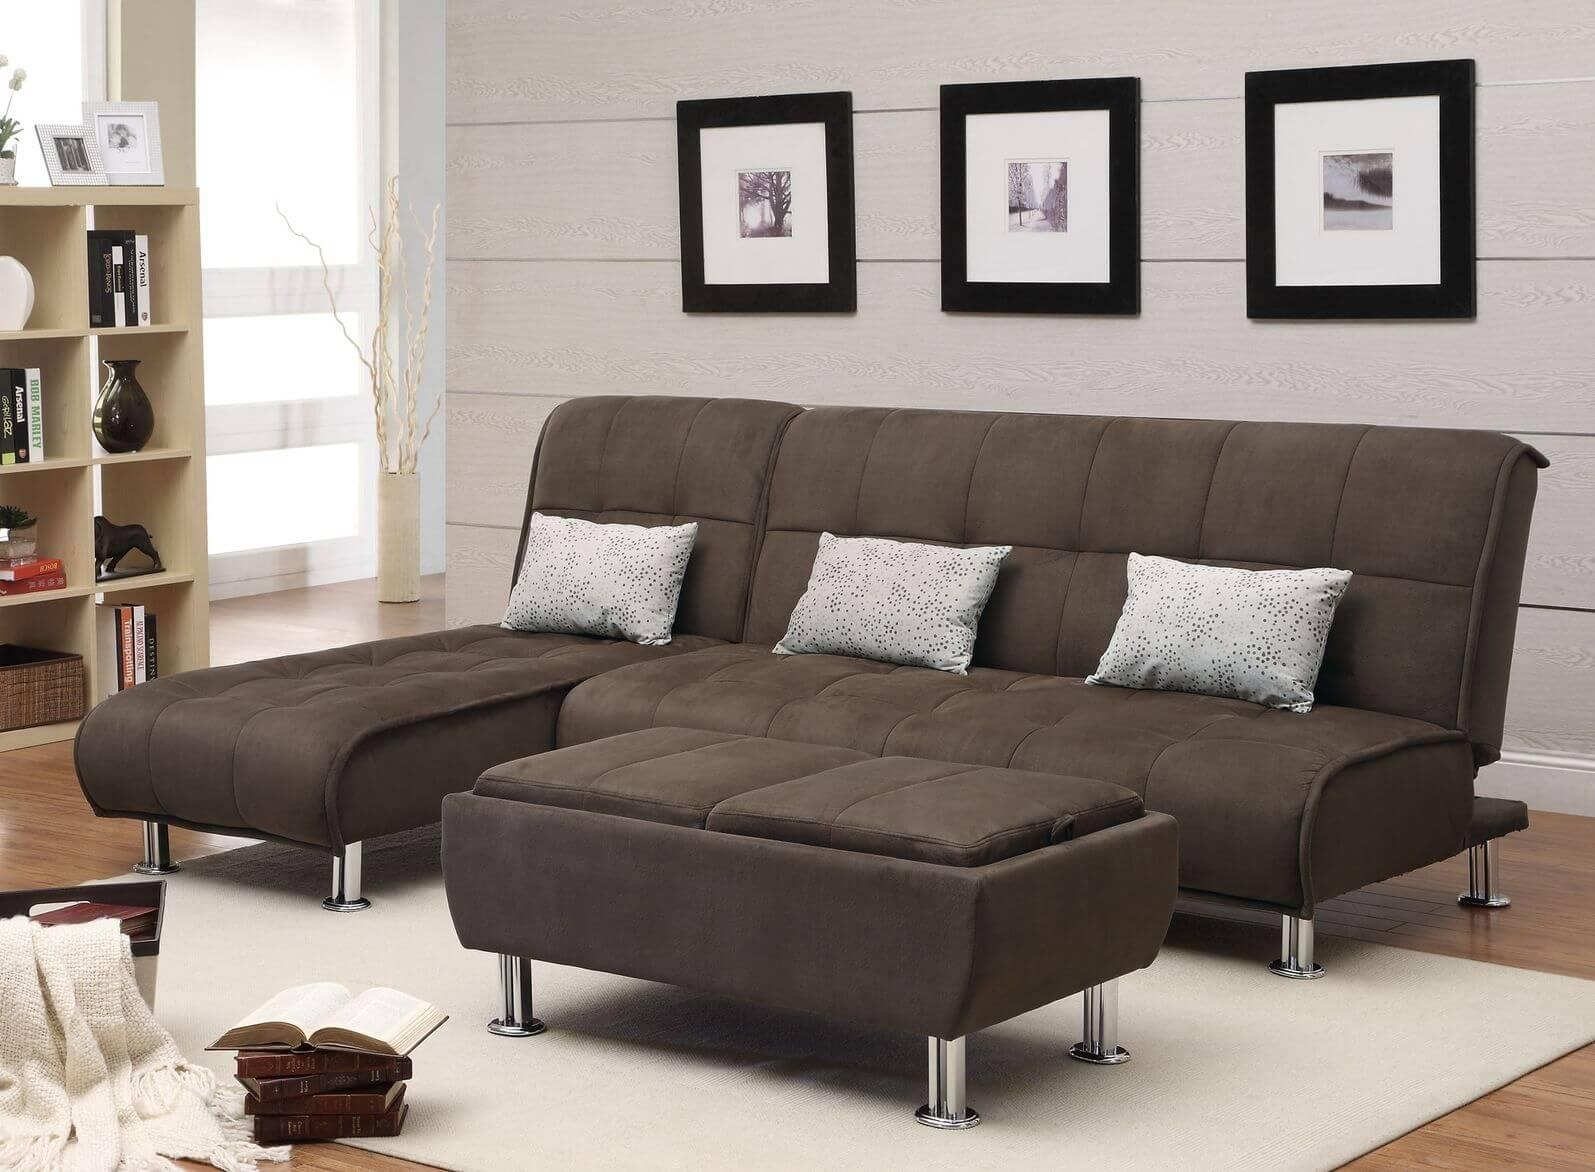 Coffee Table For Sectional Sofa With Chaise Top Ln8 | Umpsa 78 Sofas With Coffee Table For Sectional Sofa (Image 7 of 15)